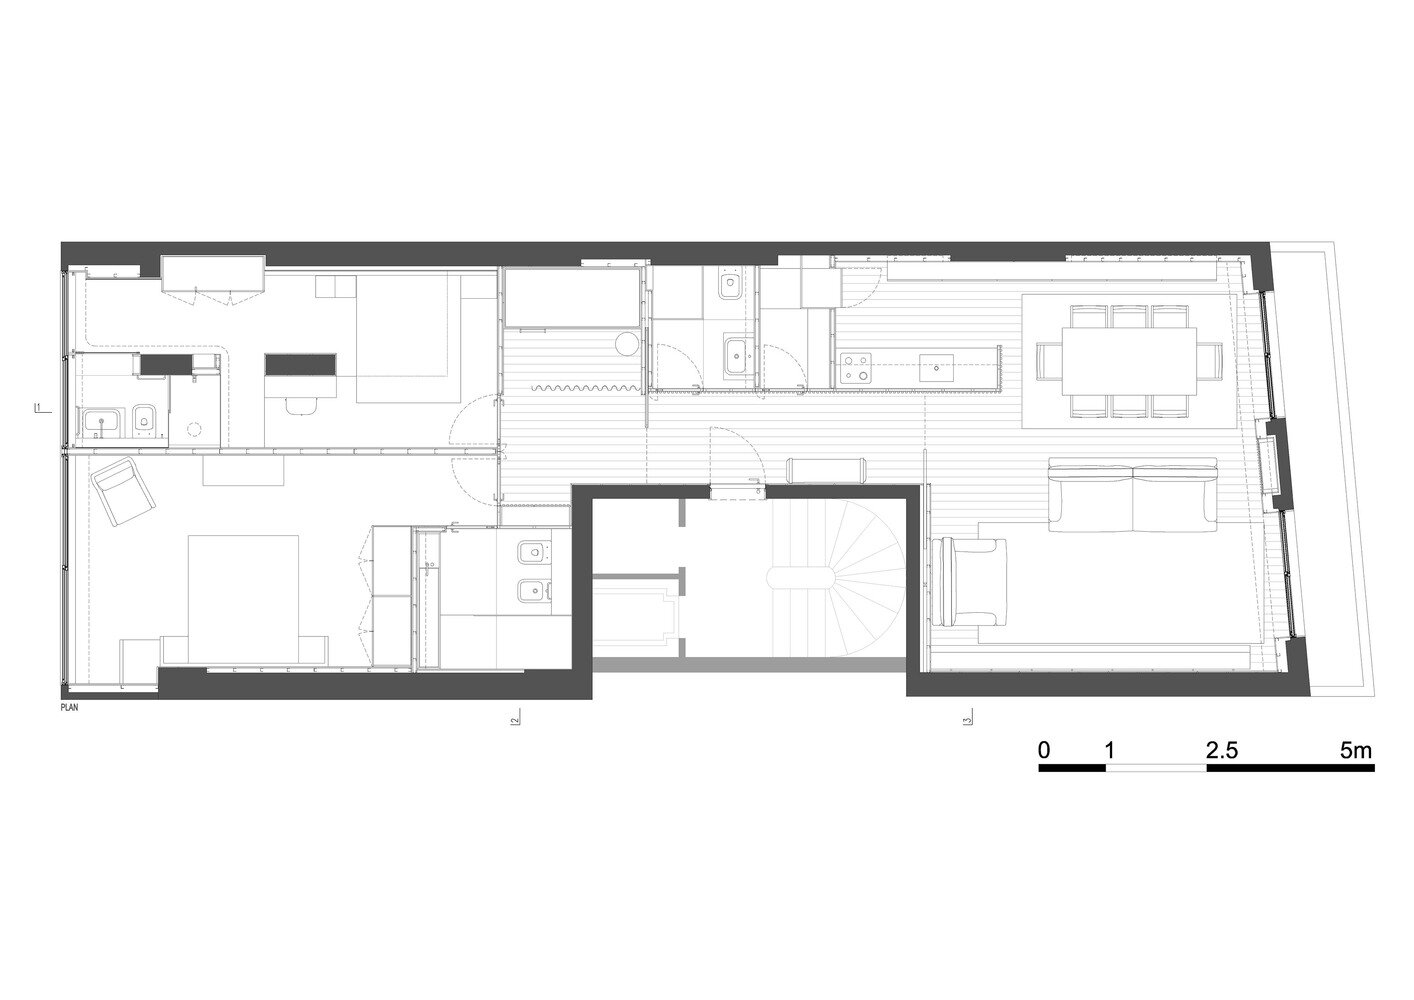 Apartment at Póvoa do Varzim - Pitagoras Group - Portugal - Floor Plan - Humble Homes